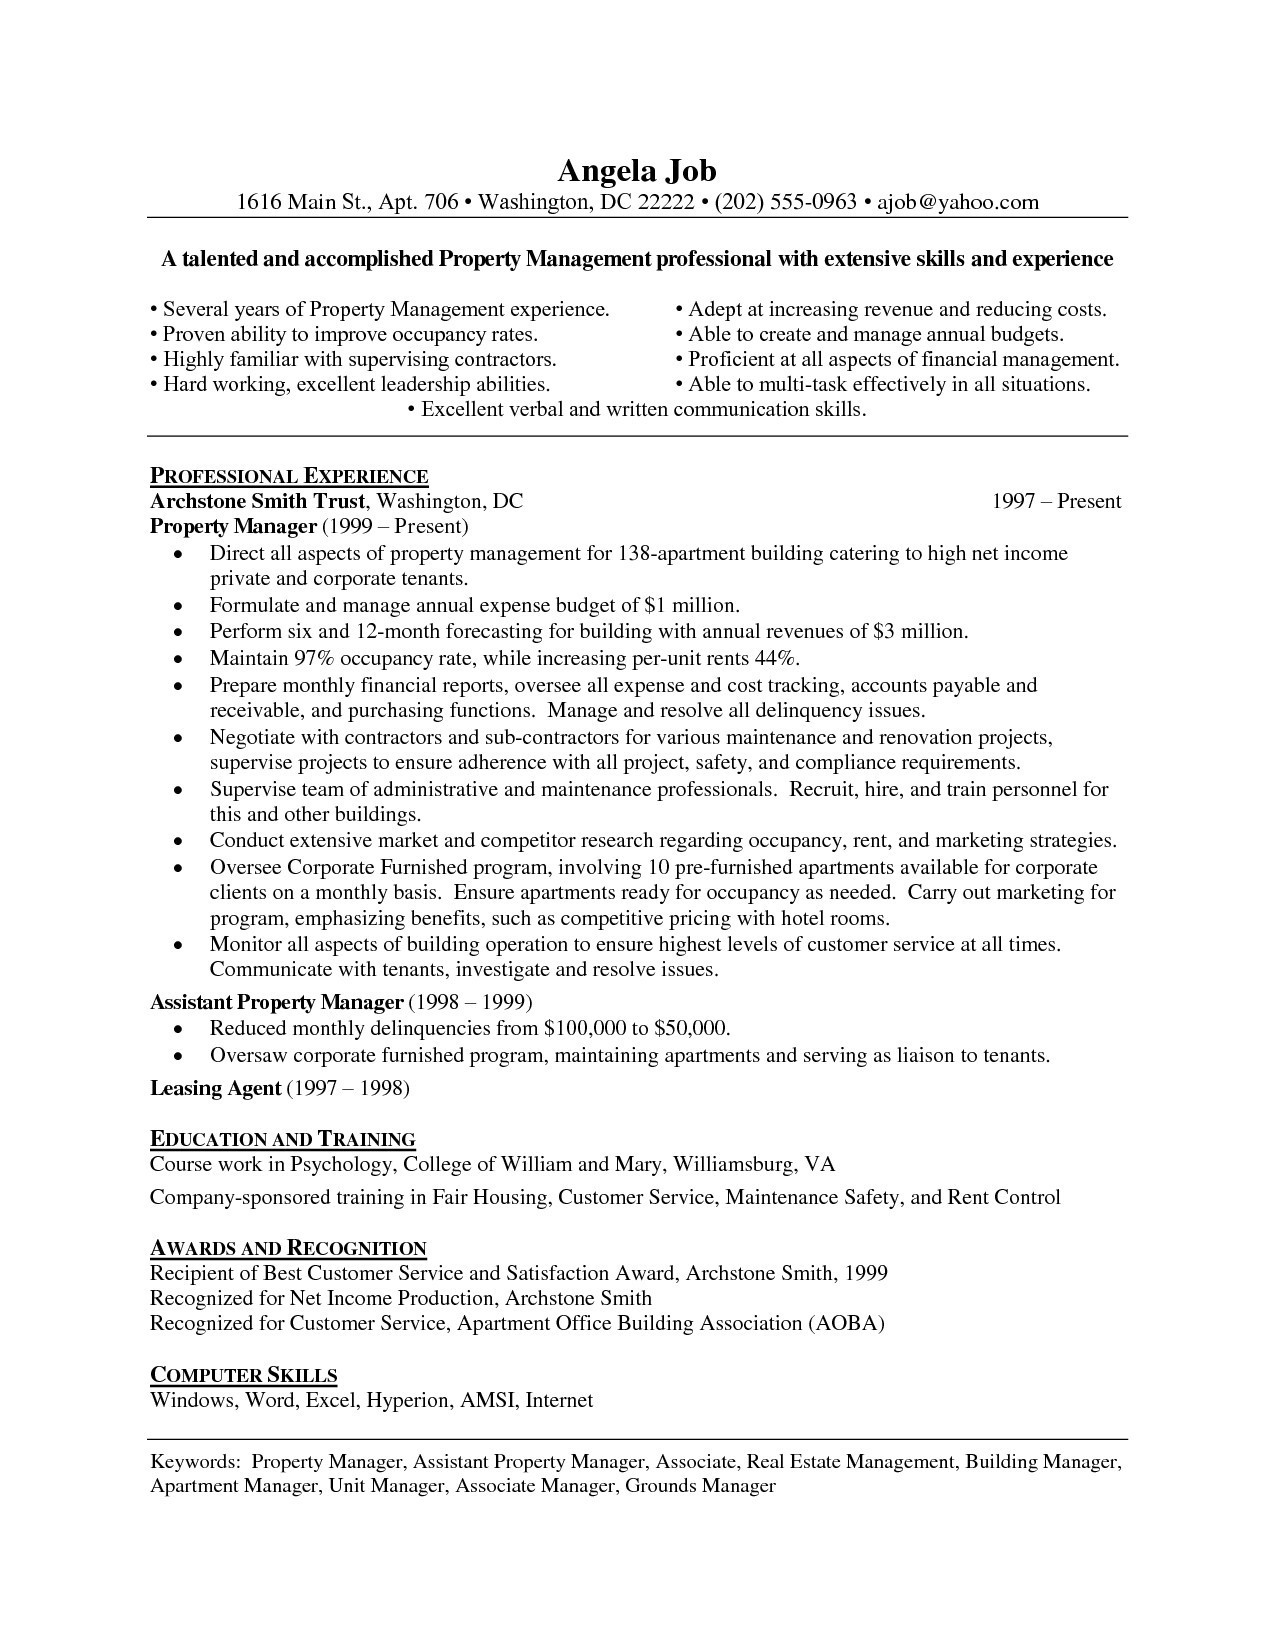 Real Estate Office Manager Resume - Property Management Resume Examples Reference assistant Property